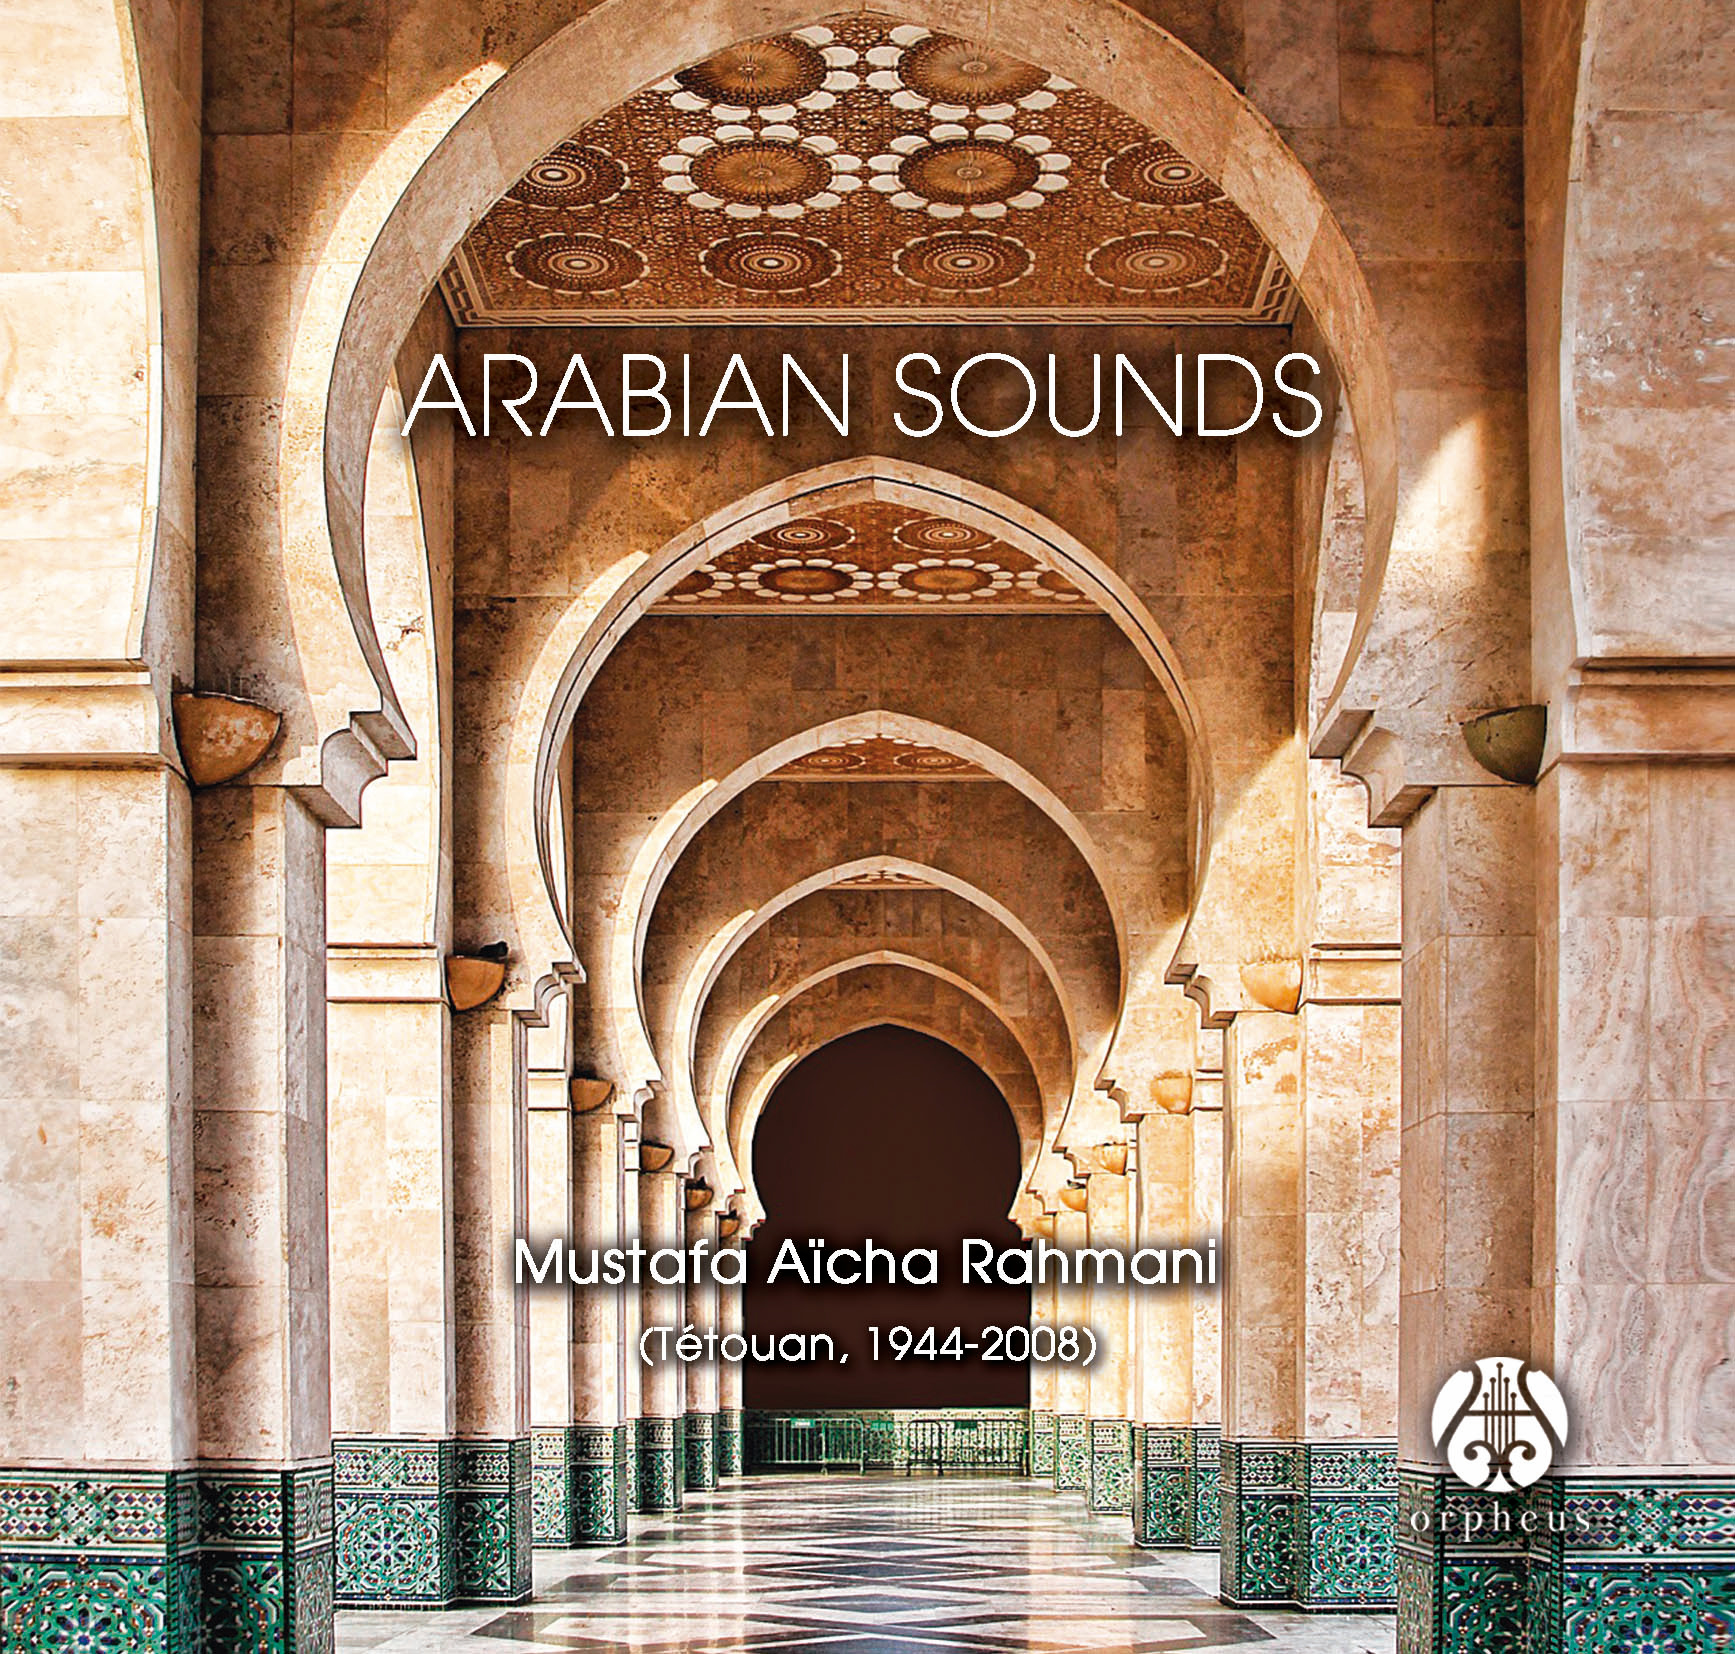 Arabian Sounds